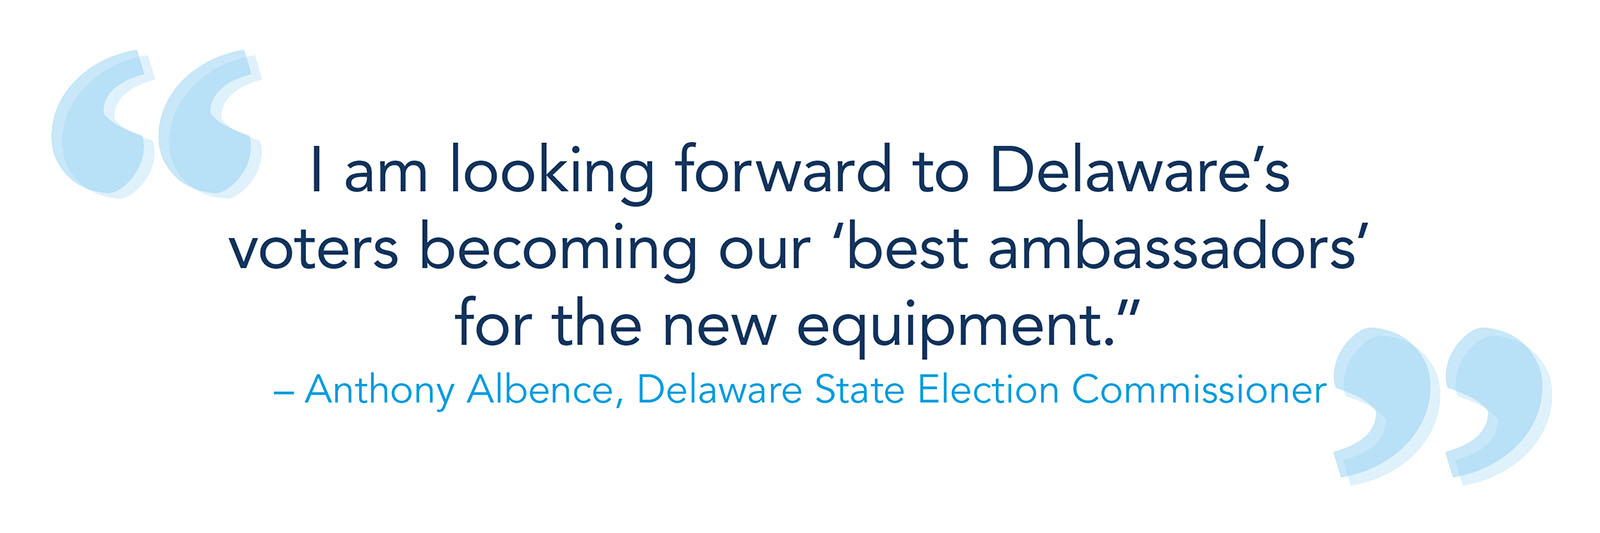 """""""I am looking forward to Delaware's voters becoming our 'best ambassadors' for the new equipment"""" -- Anthony Albence, Delaware State Election Commissioner"""